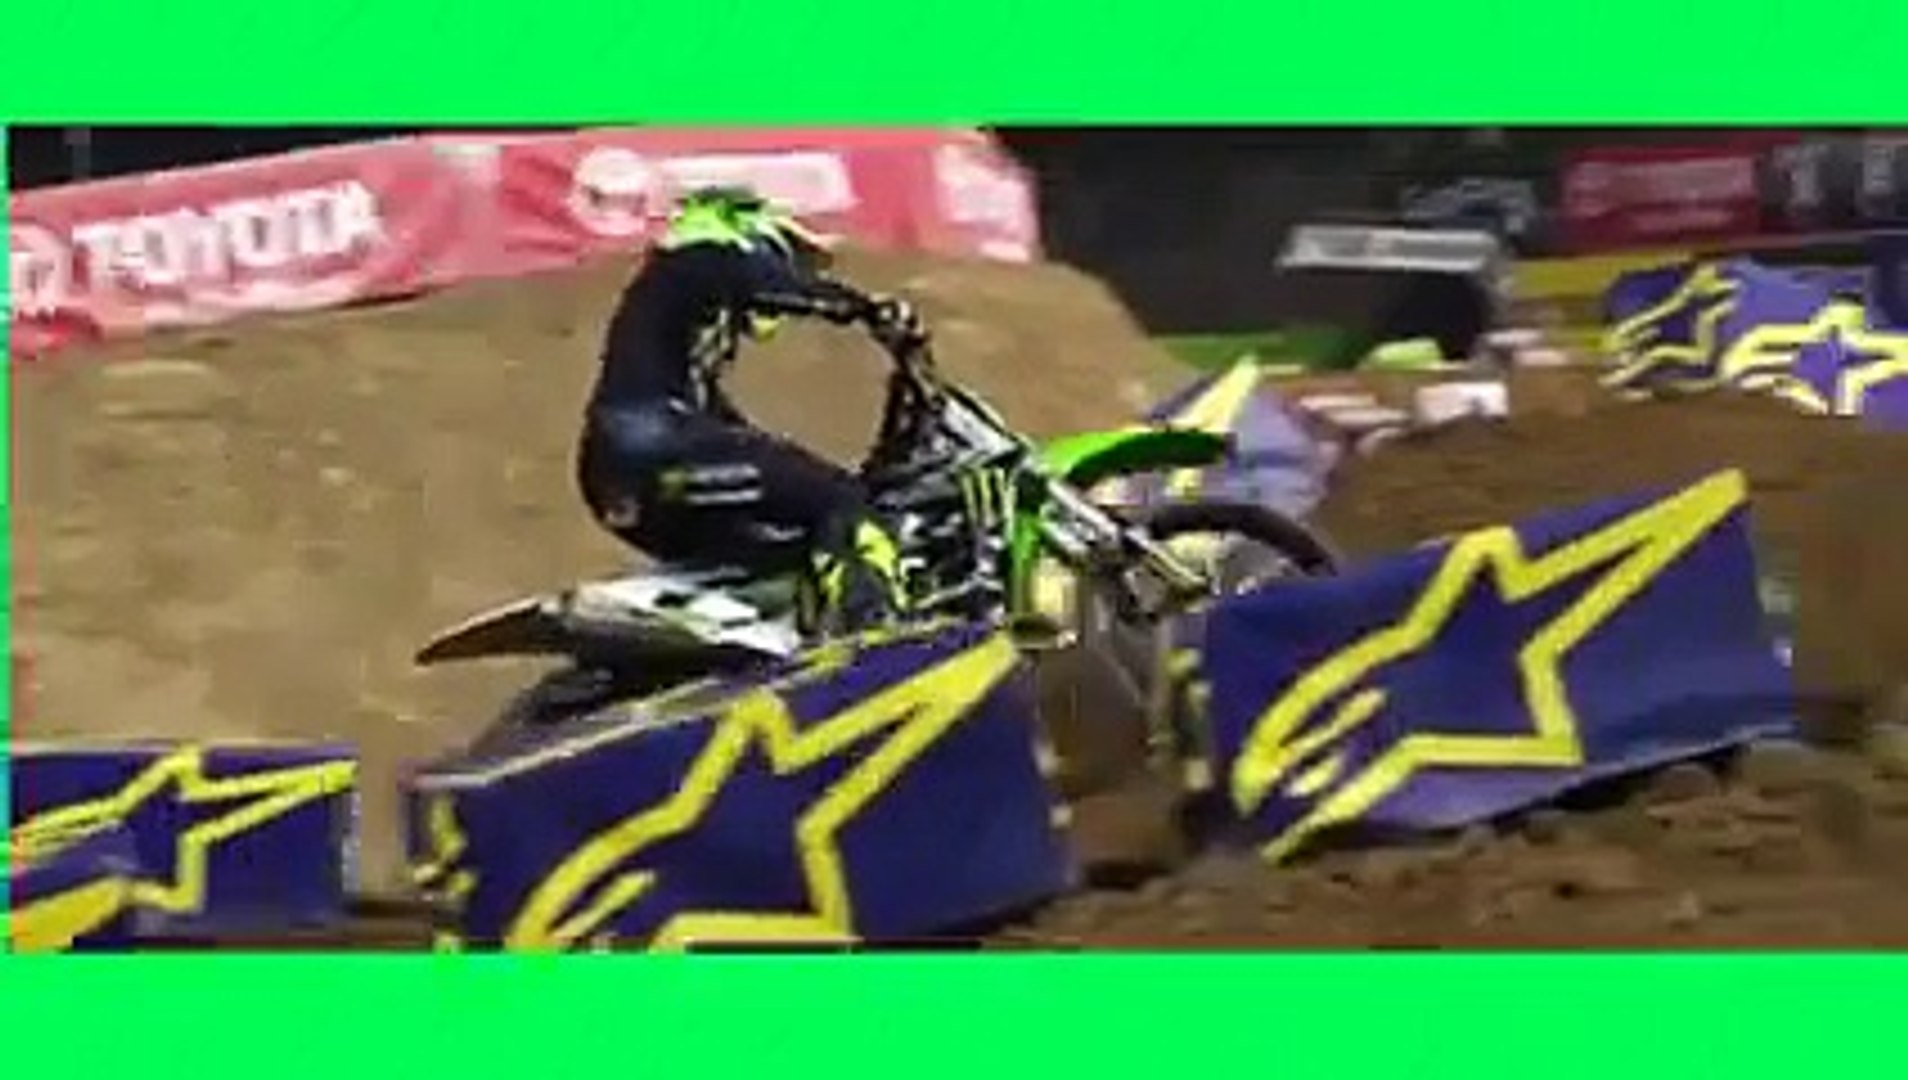 Highlights - Wedgefield Grand National Highlights 2015 - grand national Highlights - 2/01/2015 - ama